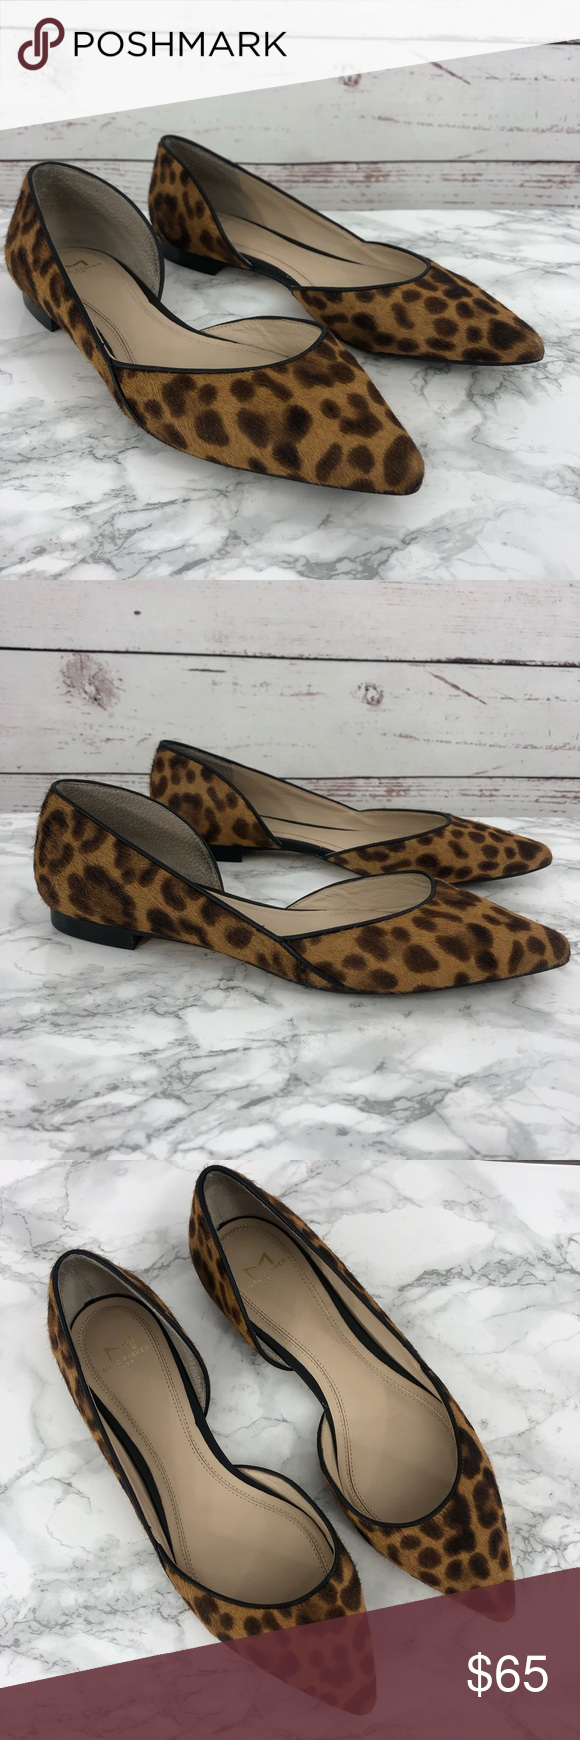 9b7d297137a MARC FISHER Sunny Leopard Hair D Orsay Flat SZ 7.5 MARC FISHER LTD Sunny  Genuine